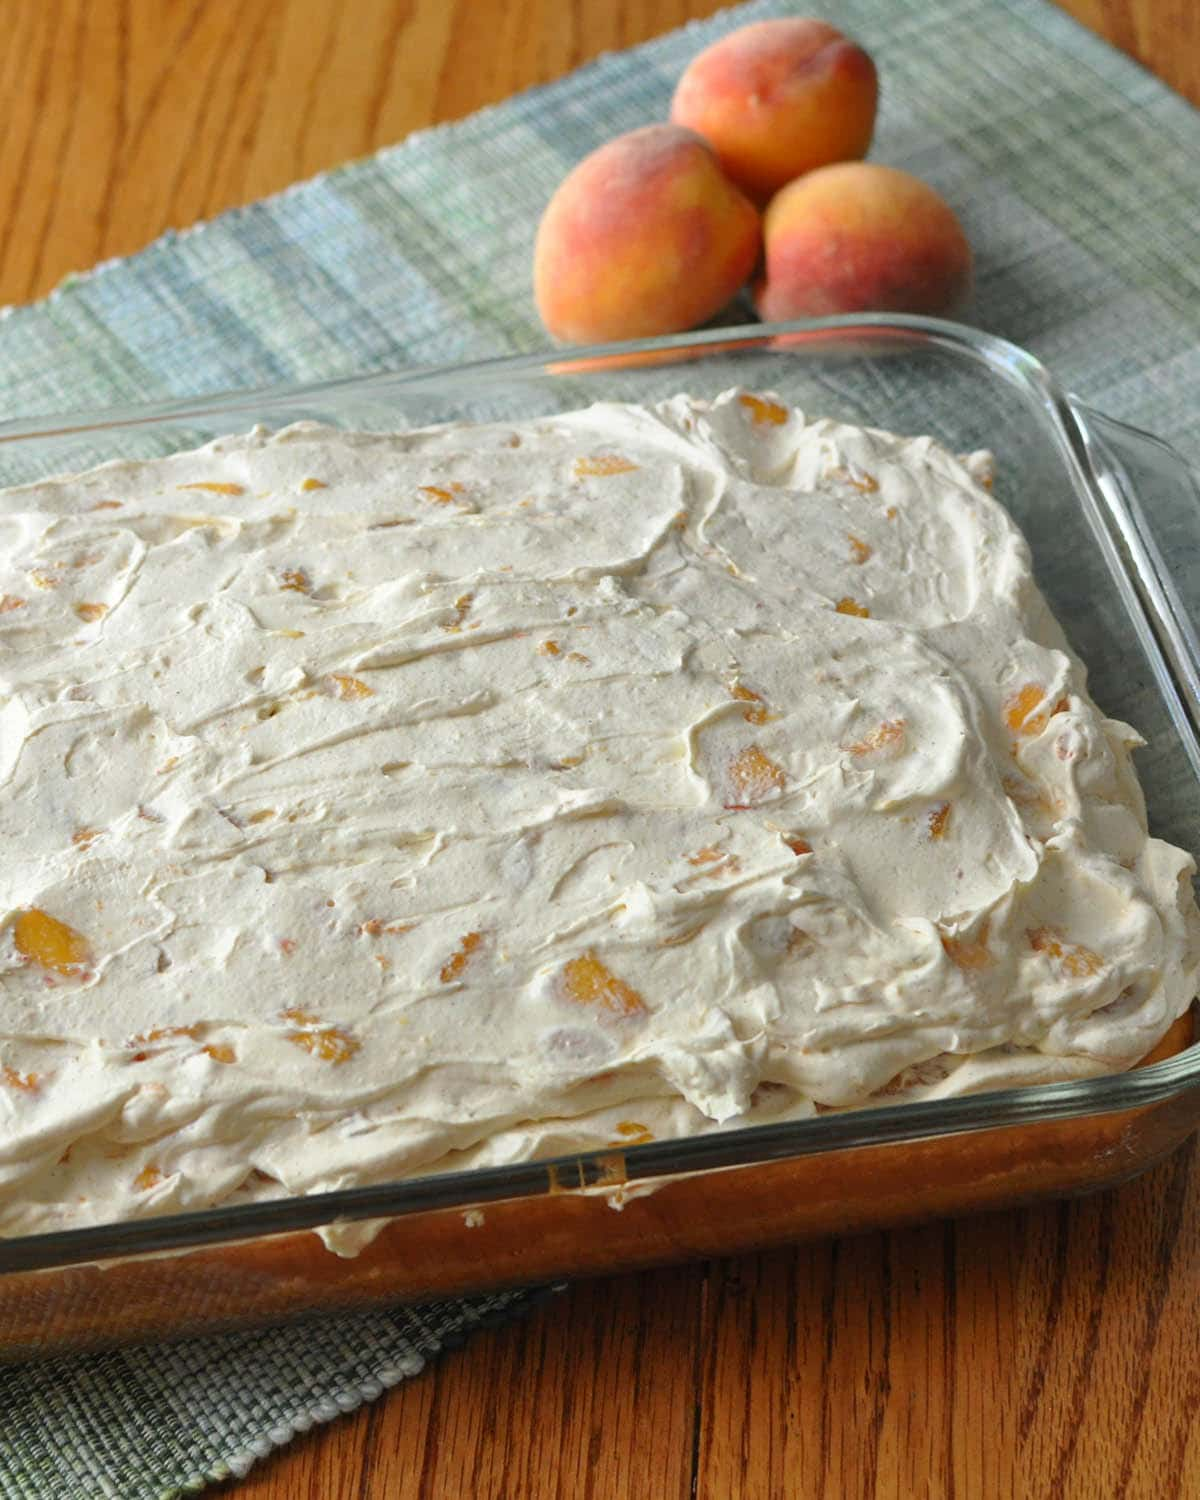 a peaches and cream cake in an oblong baking dish